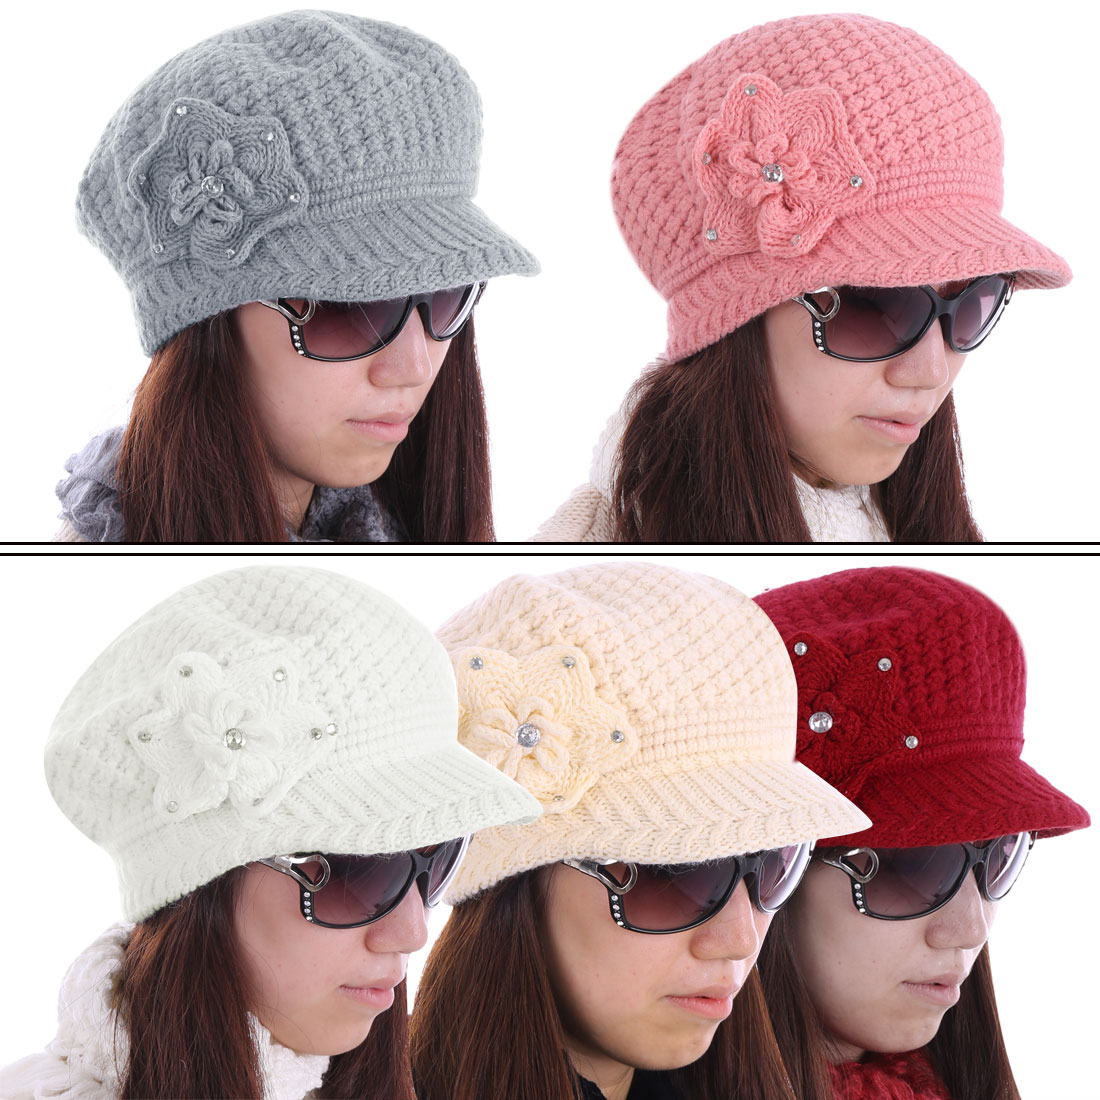 YM-14# Women Flower Pattern Rhinestone Embellished Brim Hat